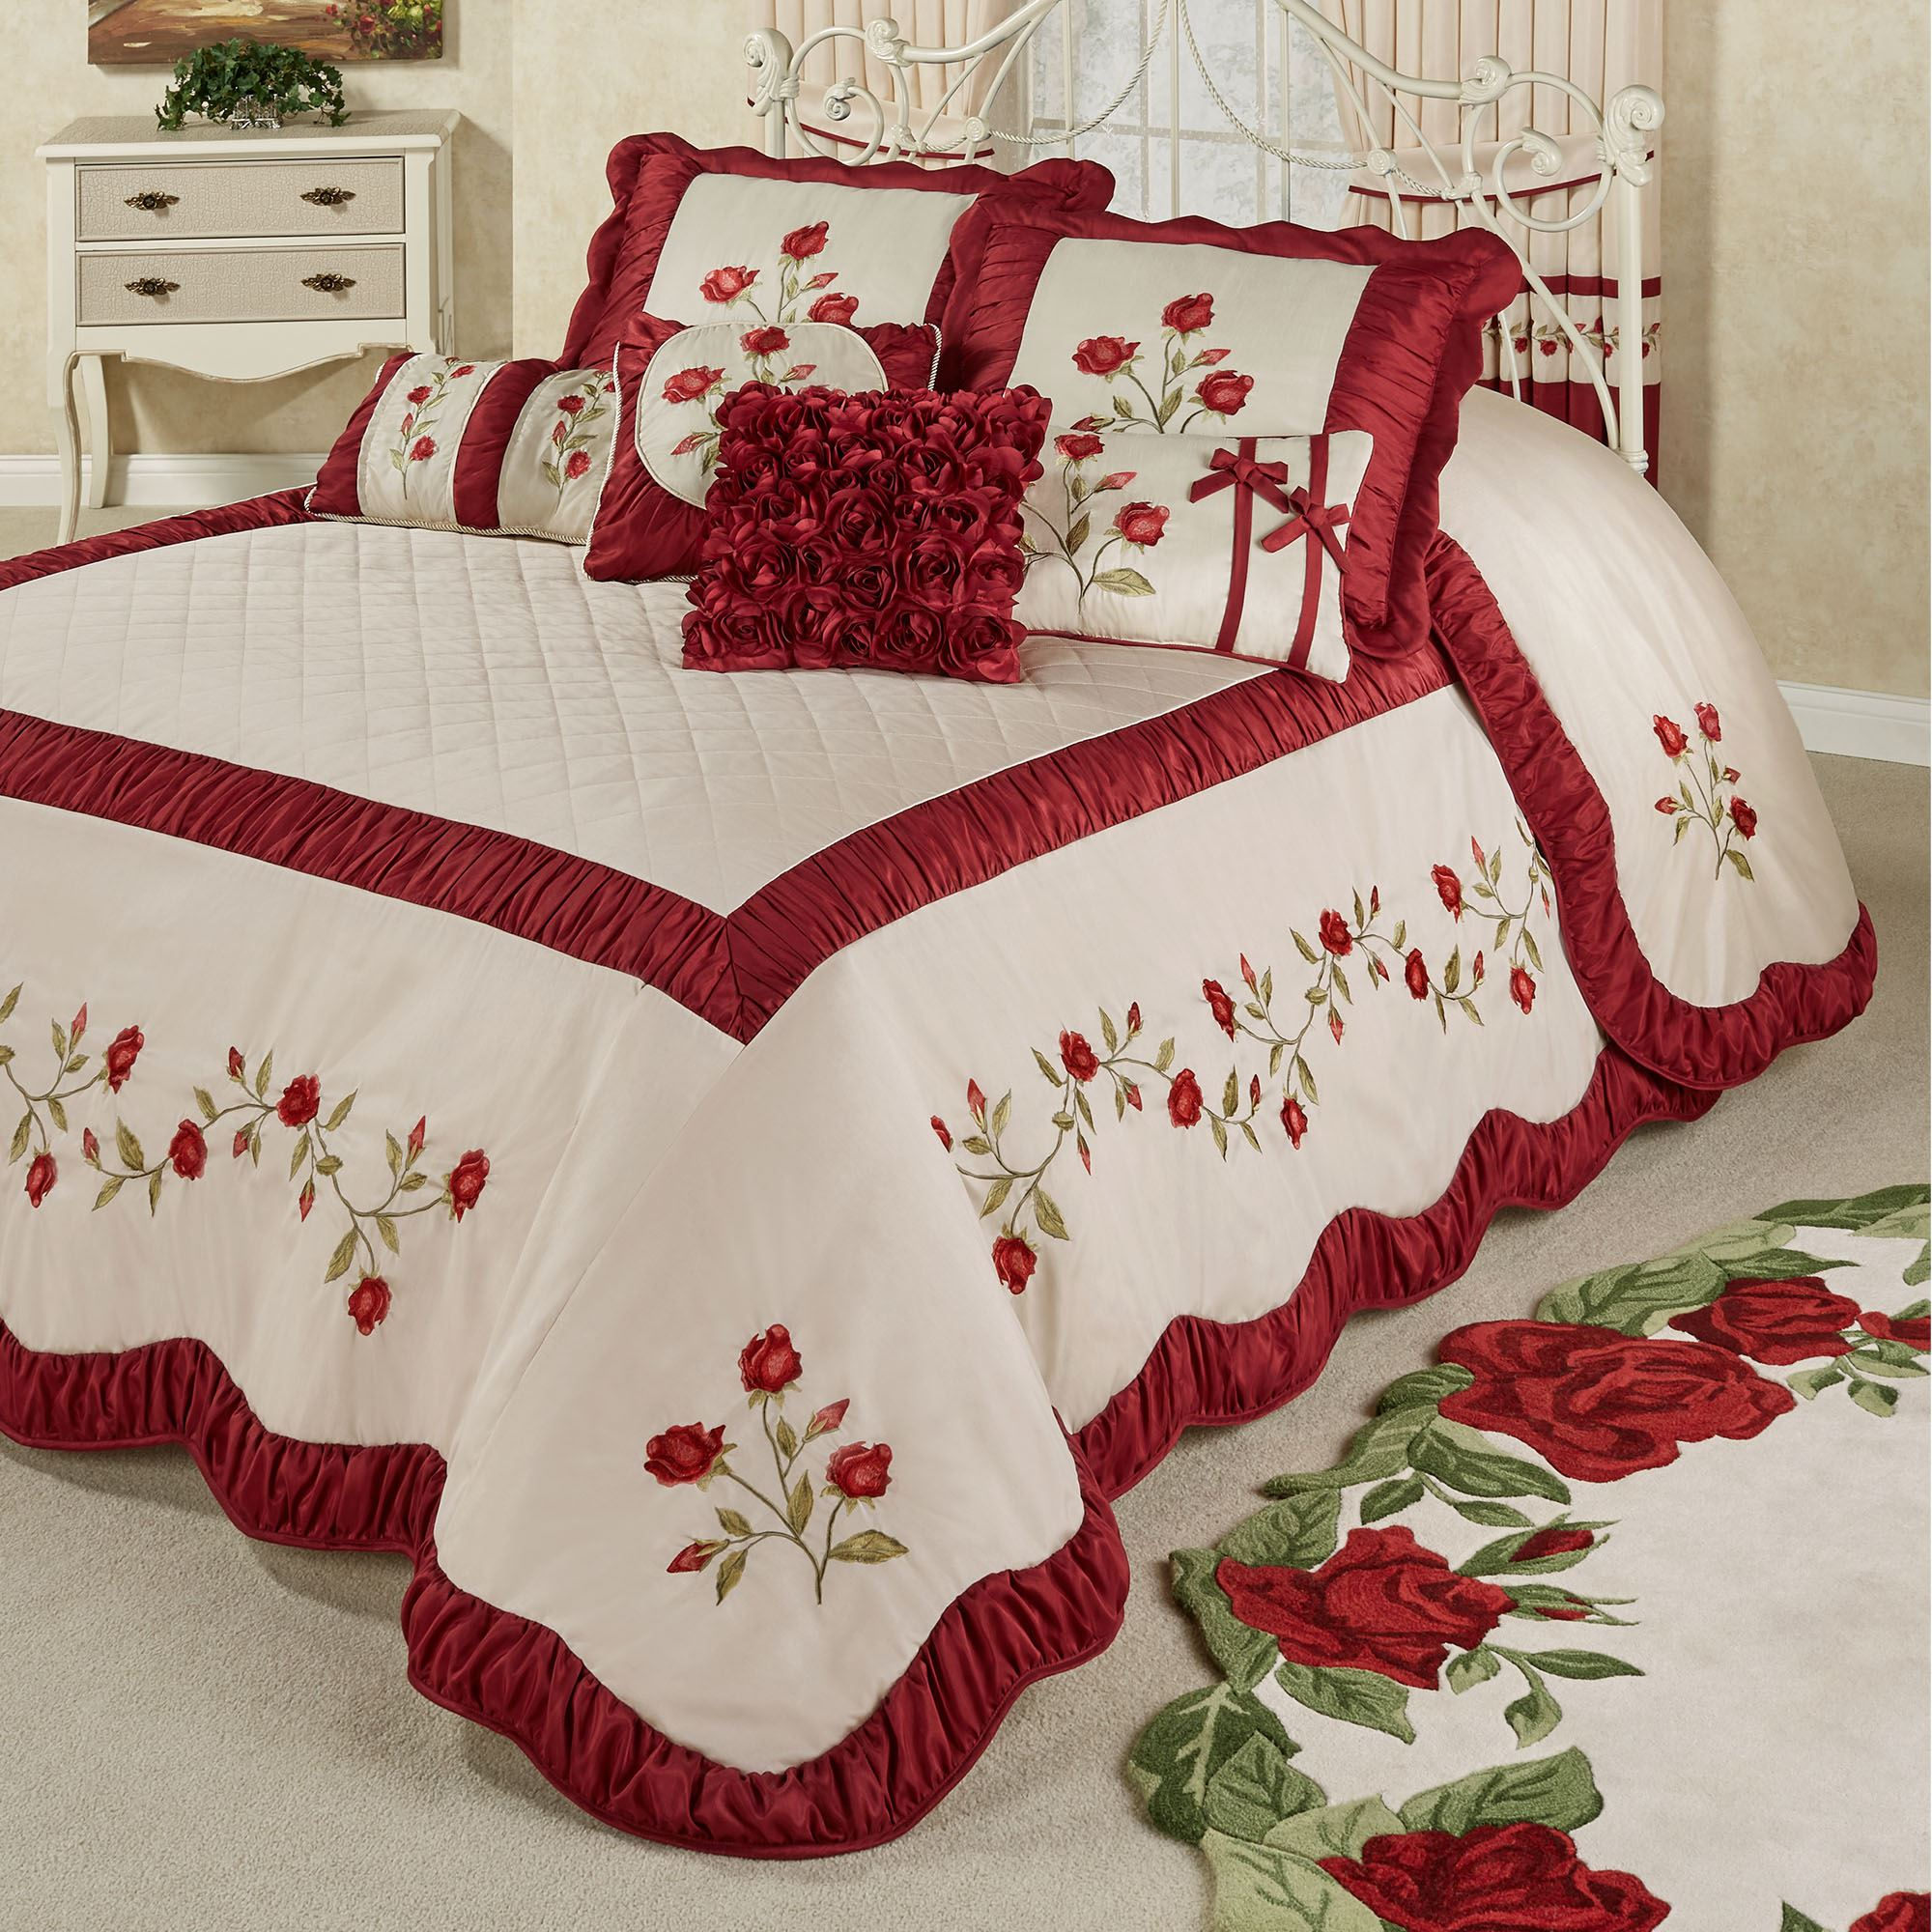 Briar Rose Dark Red Floral Romantic Oversized Bedspread Bedding